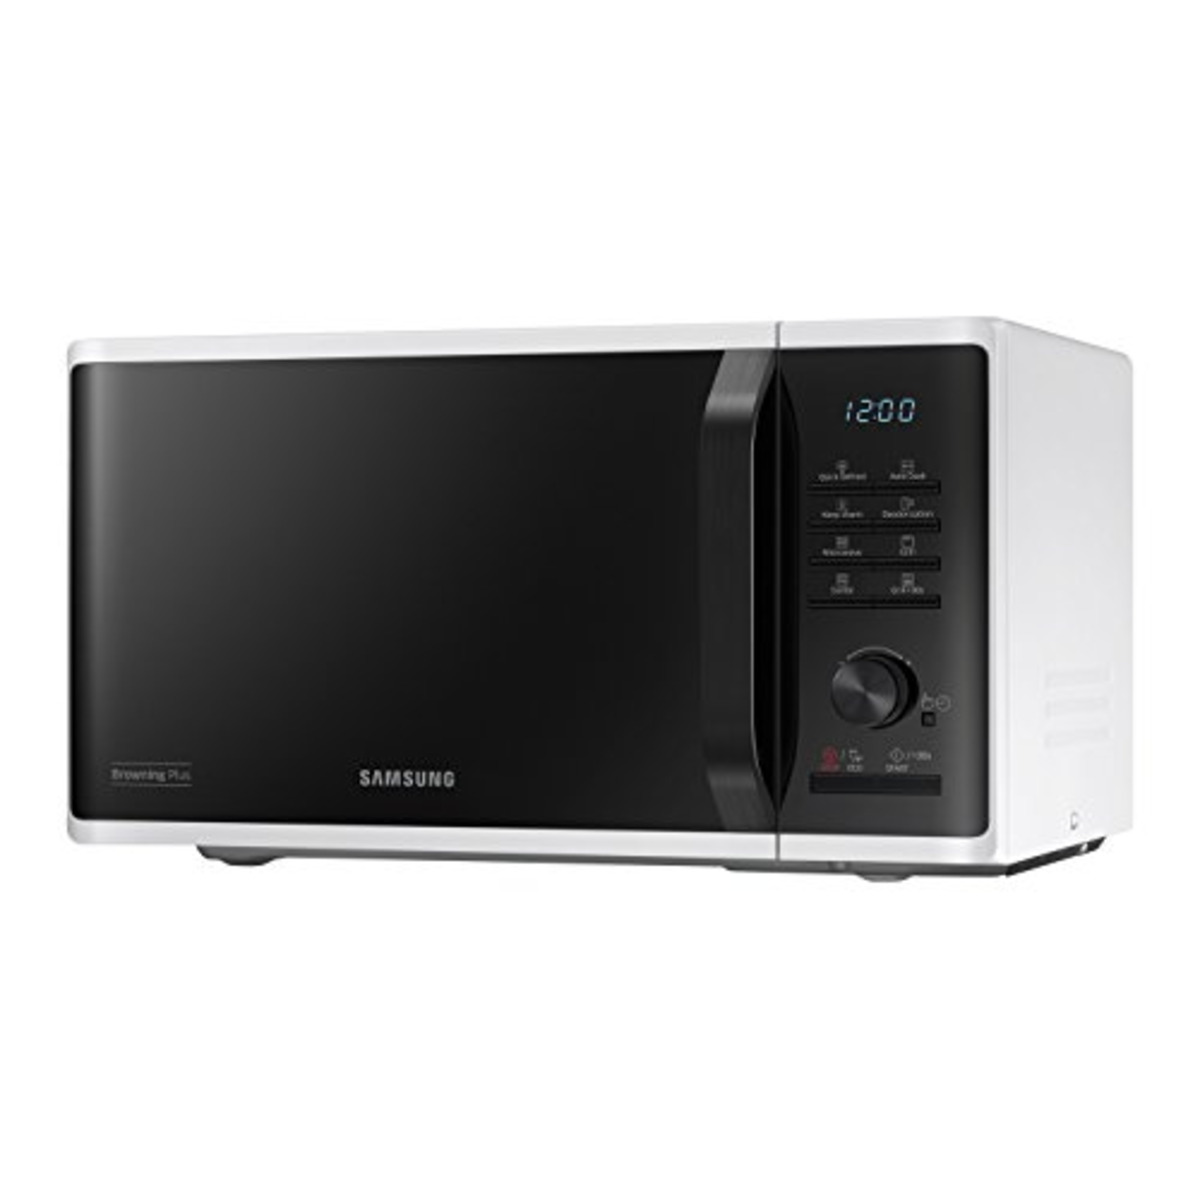 Samsung MG23K3515AW forno a microonde Superficie piana Microonde con grill 23 L